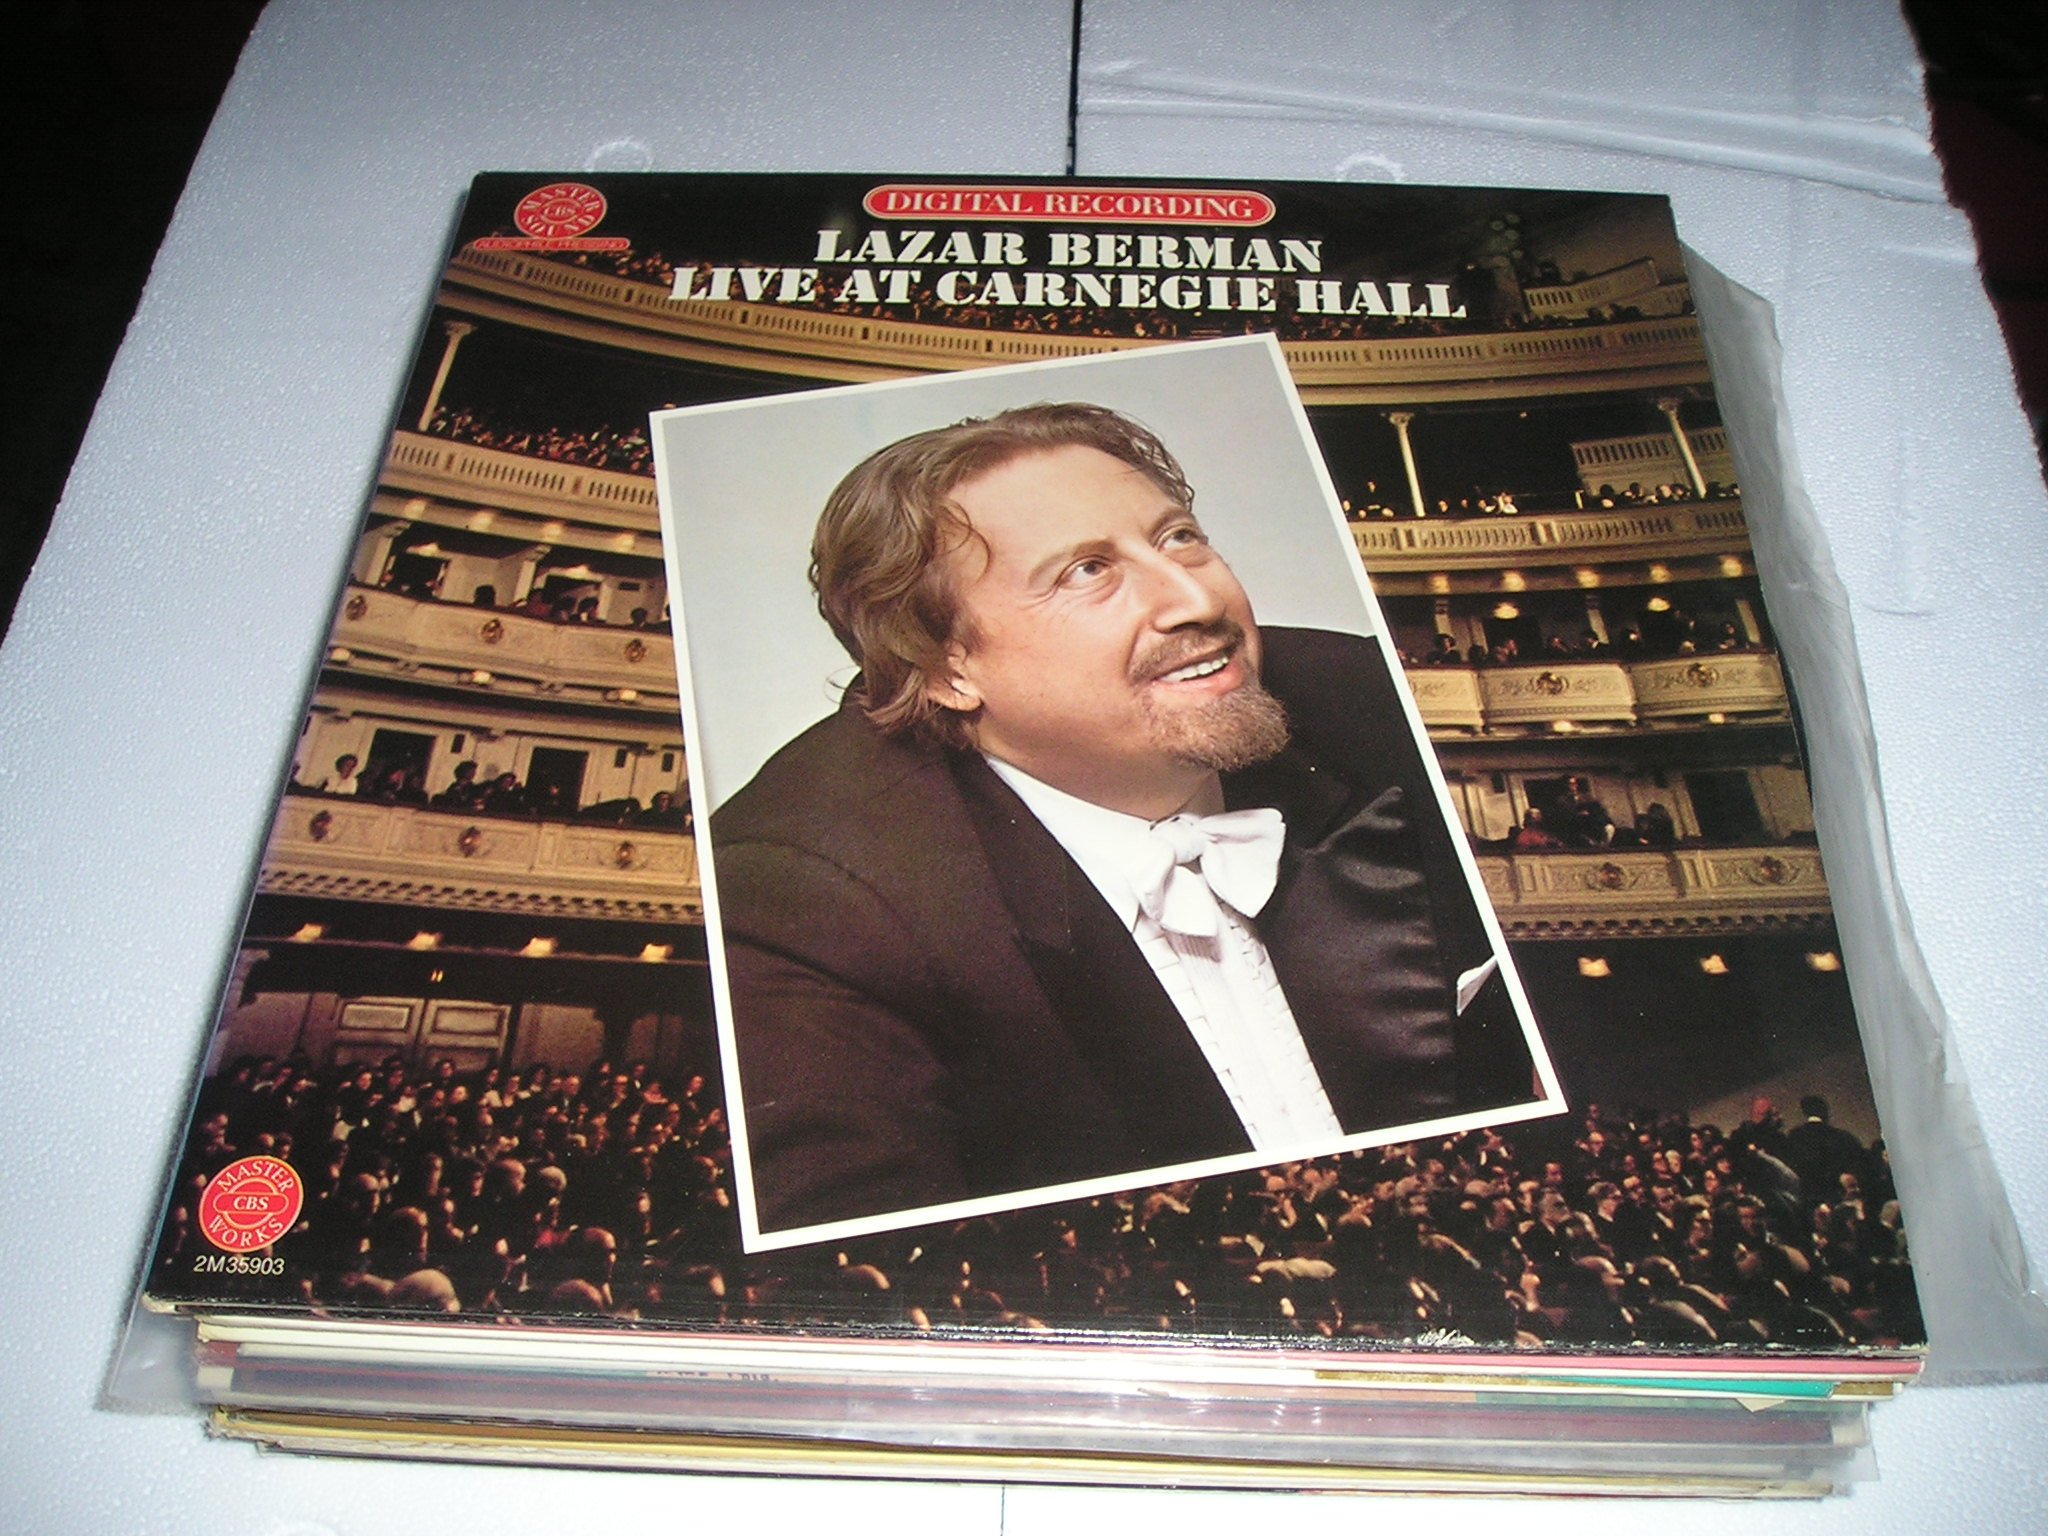 Lazar Berman Live At Carnegie Hall March 11, 1979